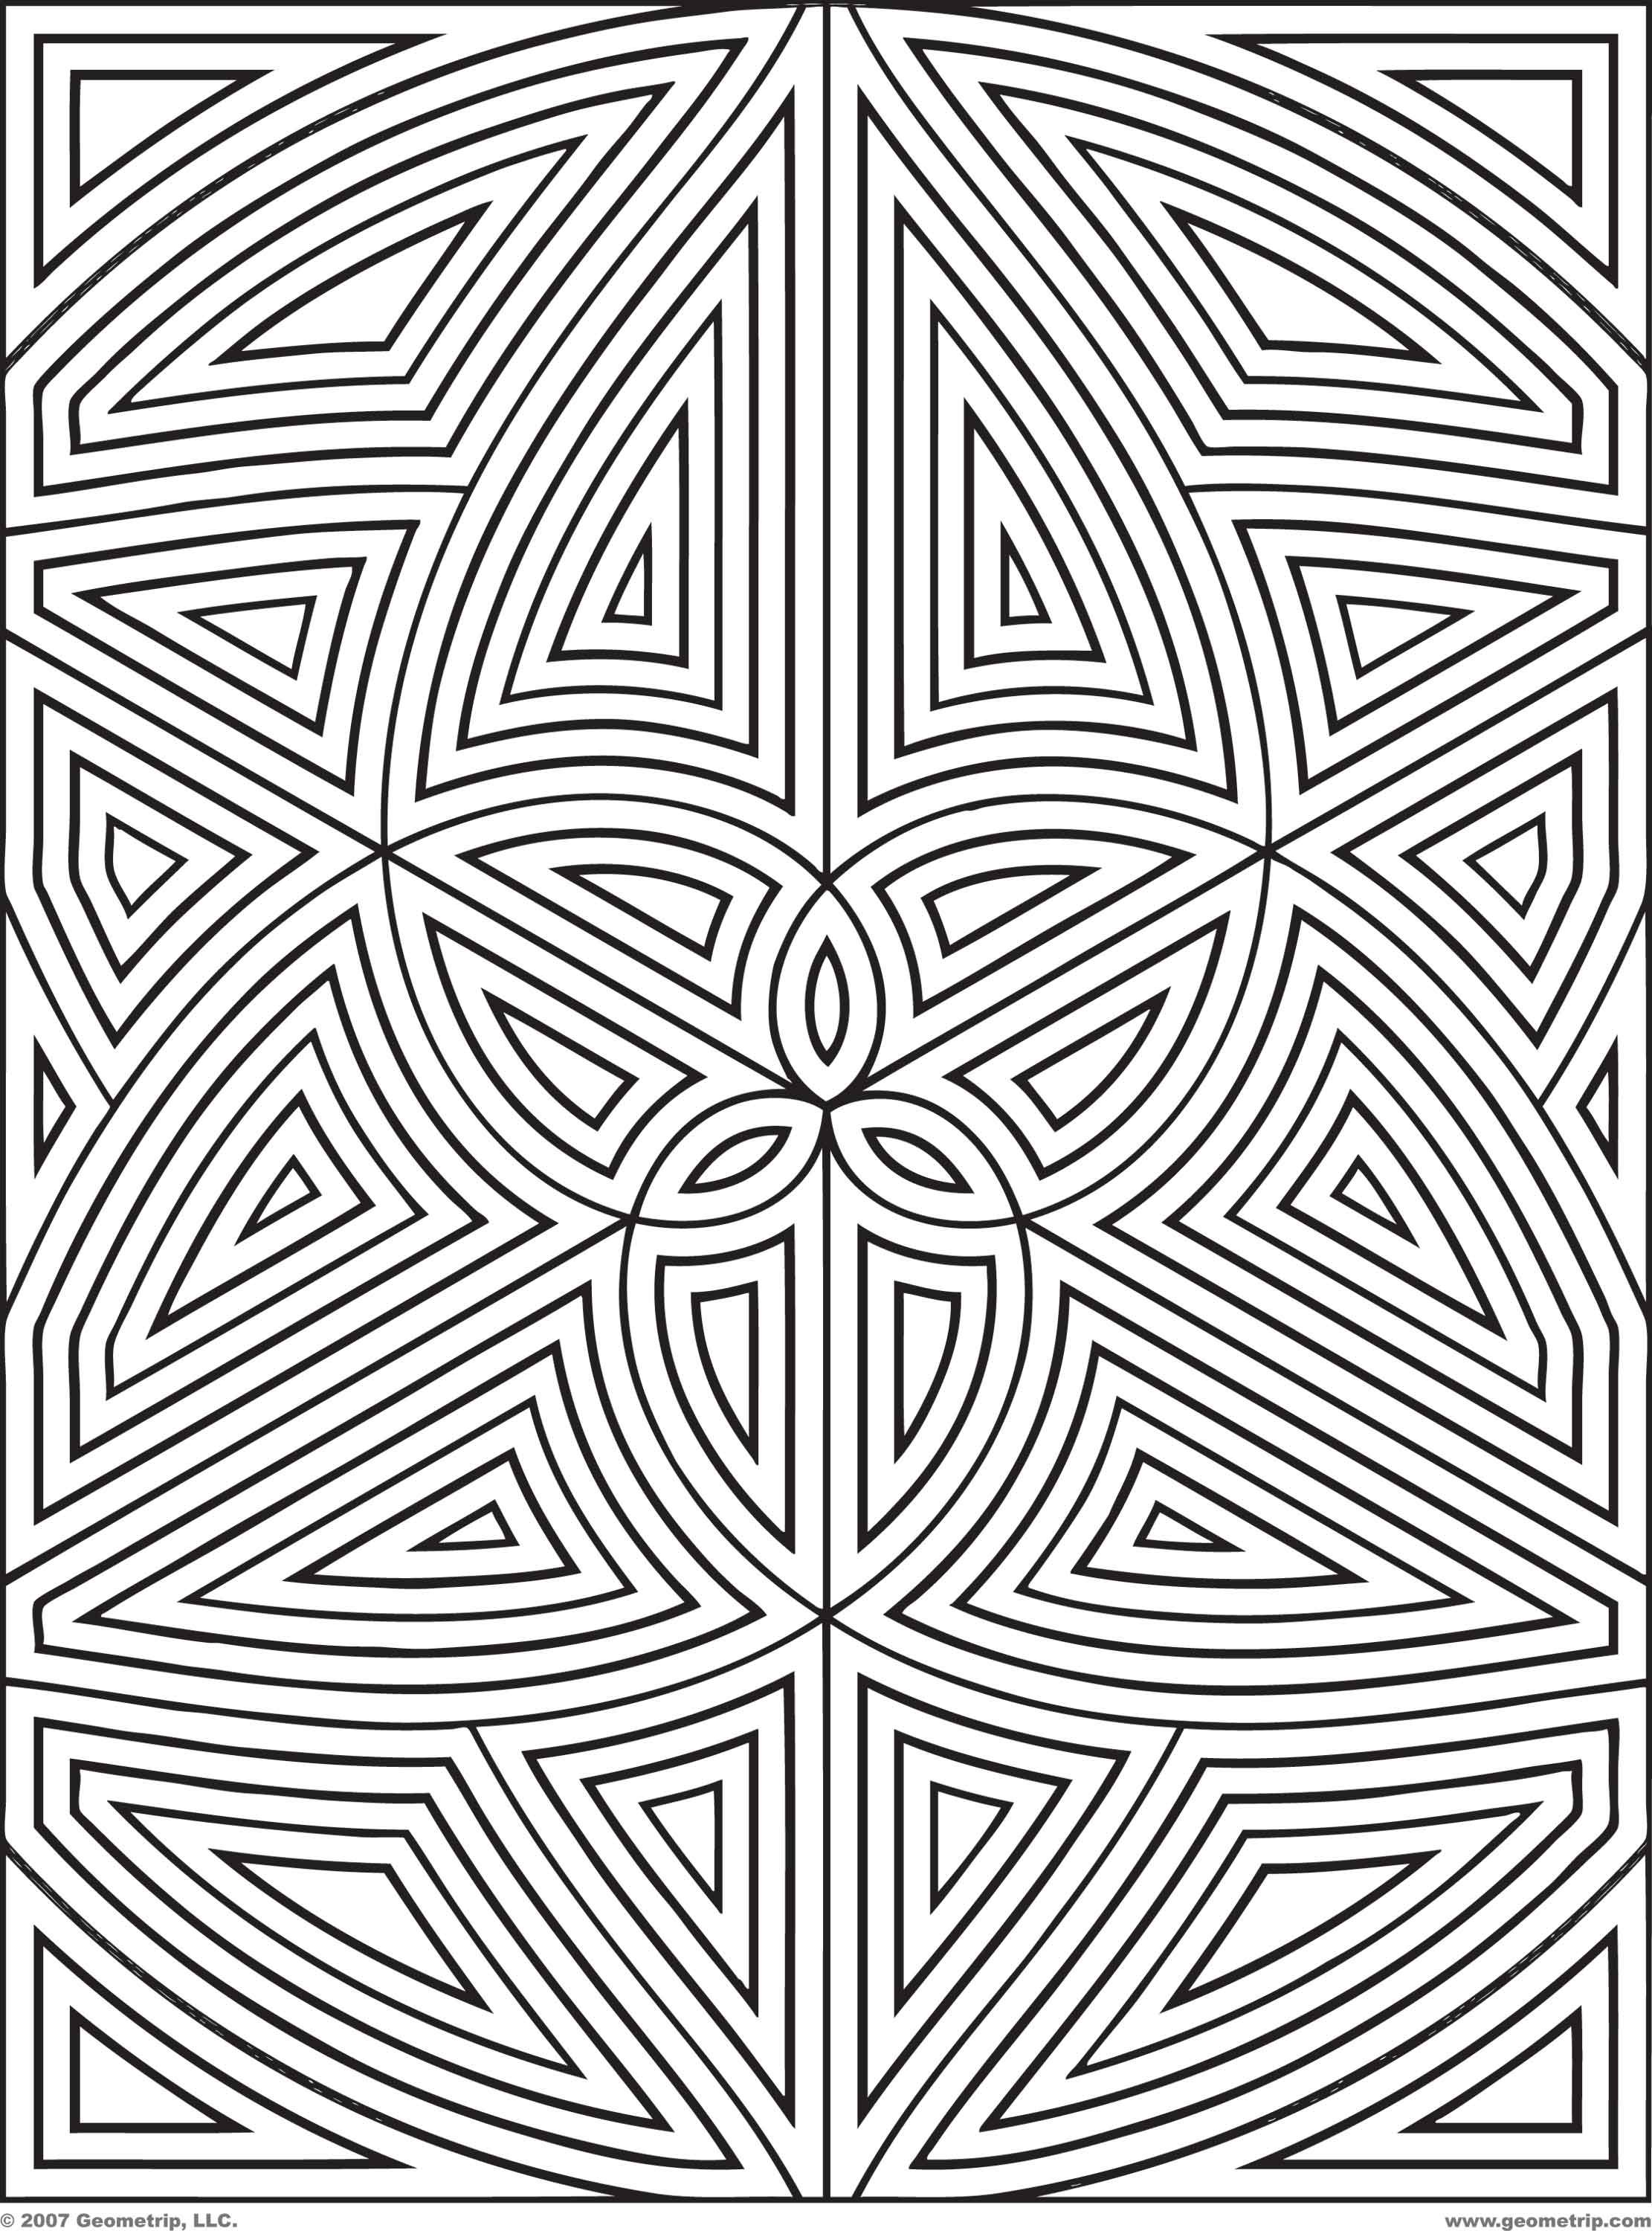 Difficult Geometric Design Coloring Pages | Rectangles: Page 1 of 2 ...